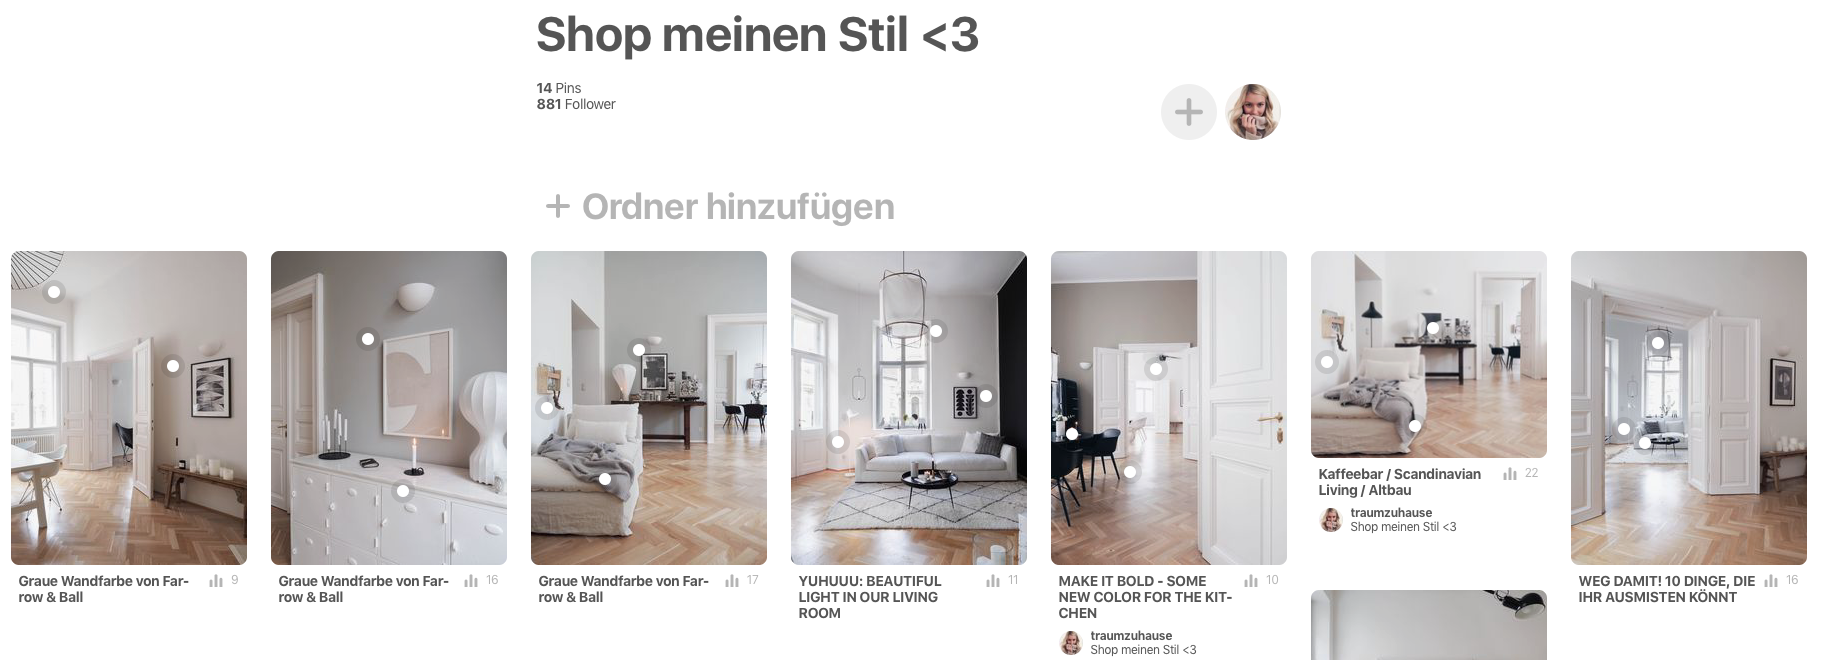 Neue Pinterest Funktion Shop The Look - Shoppable Pins